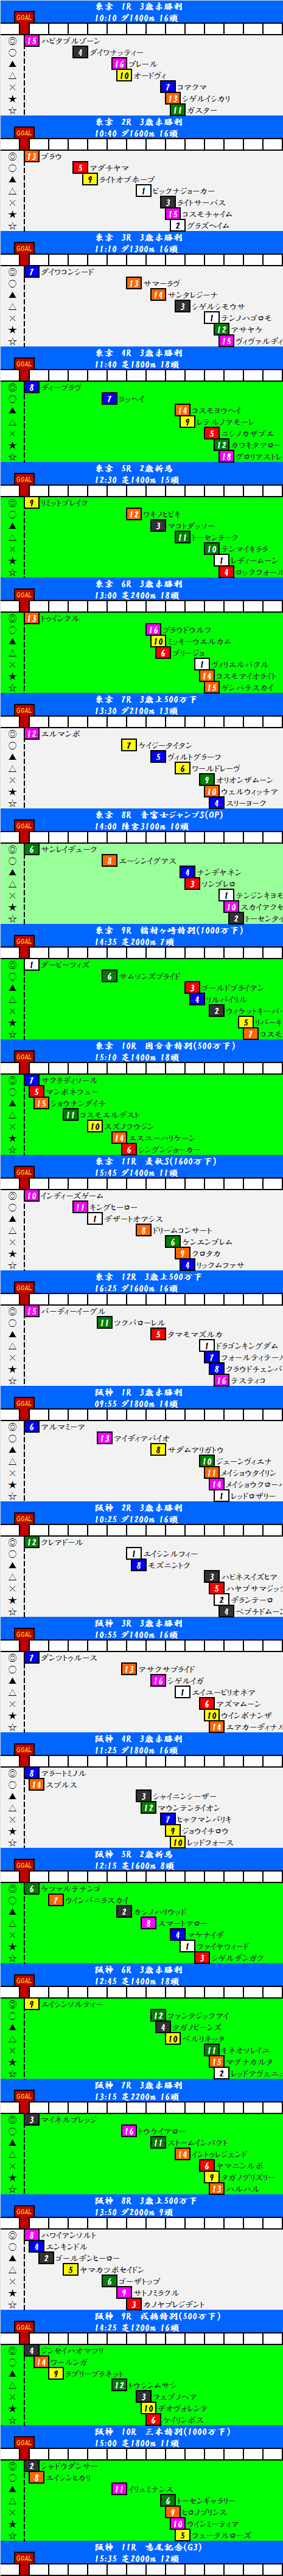 201406071.png